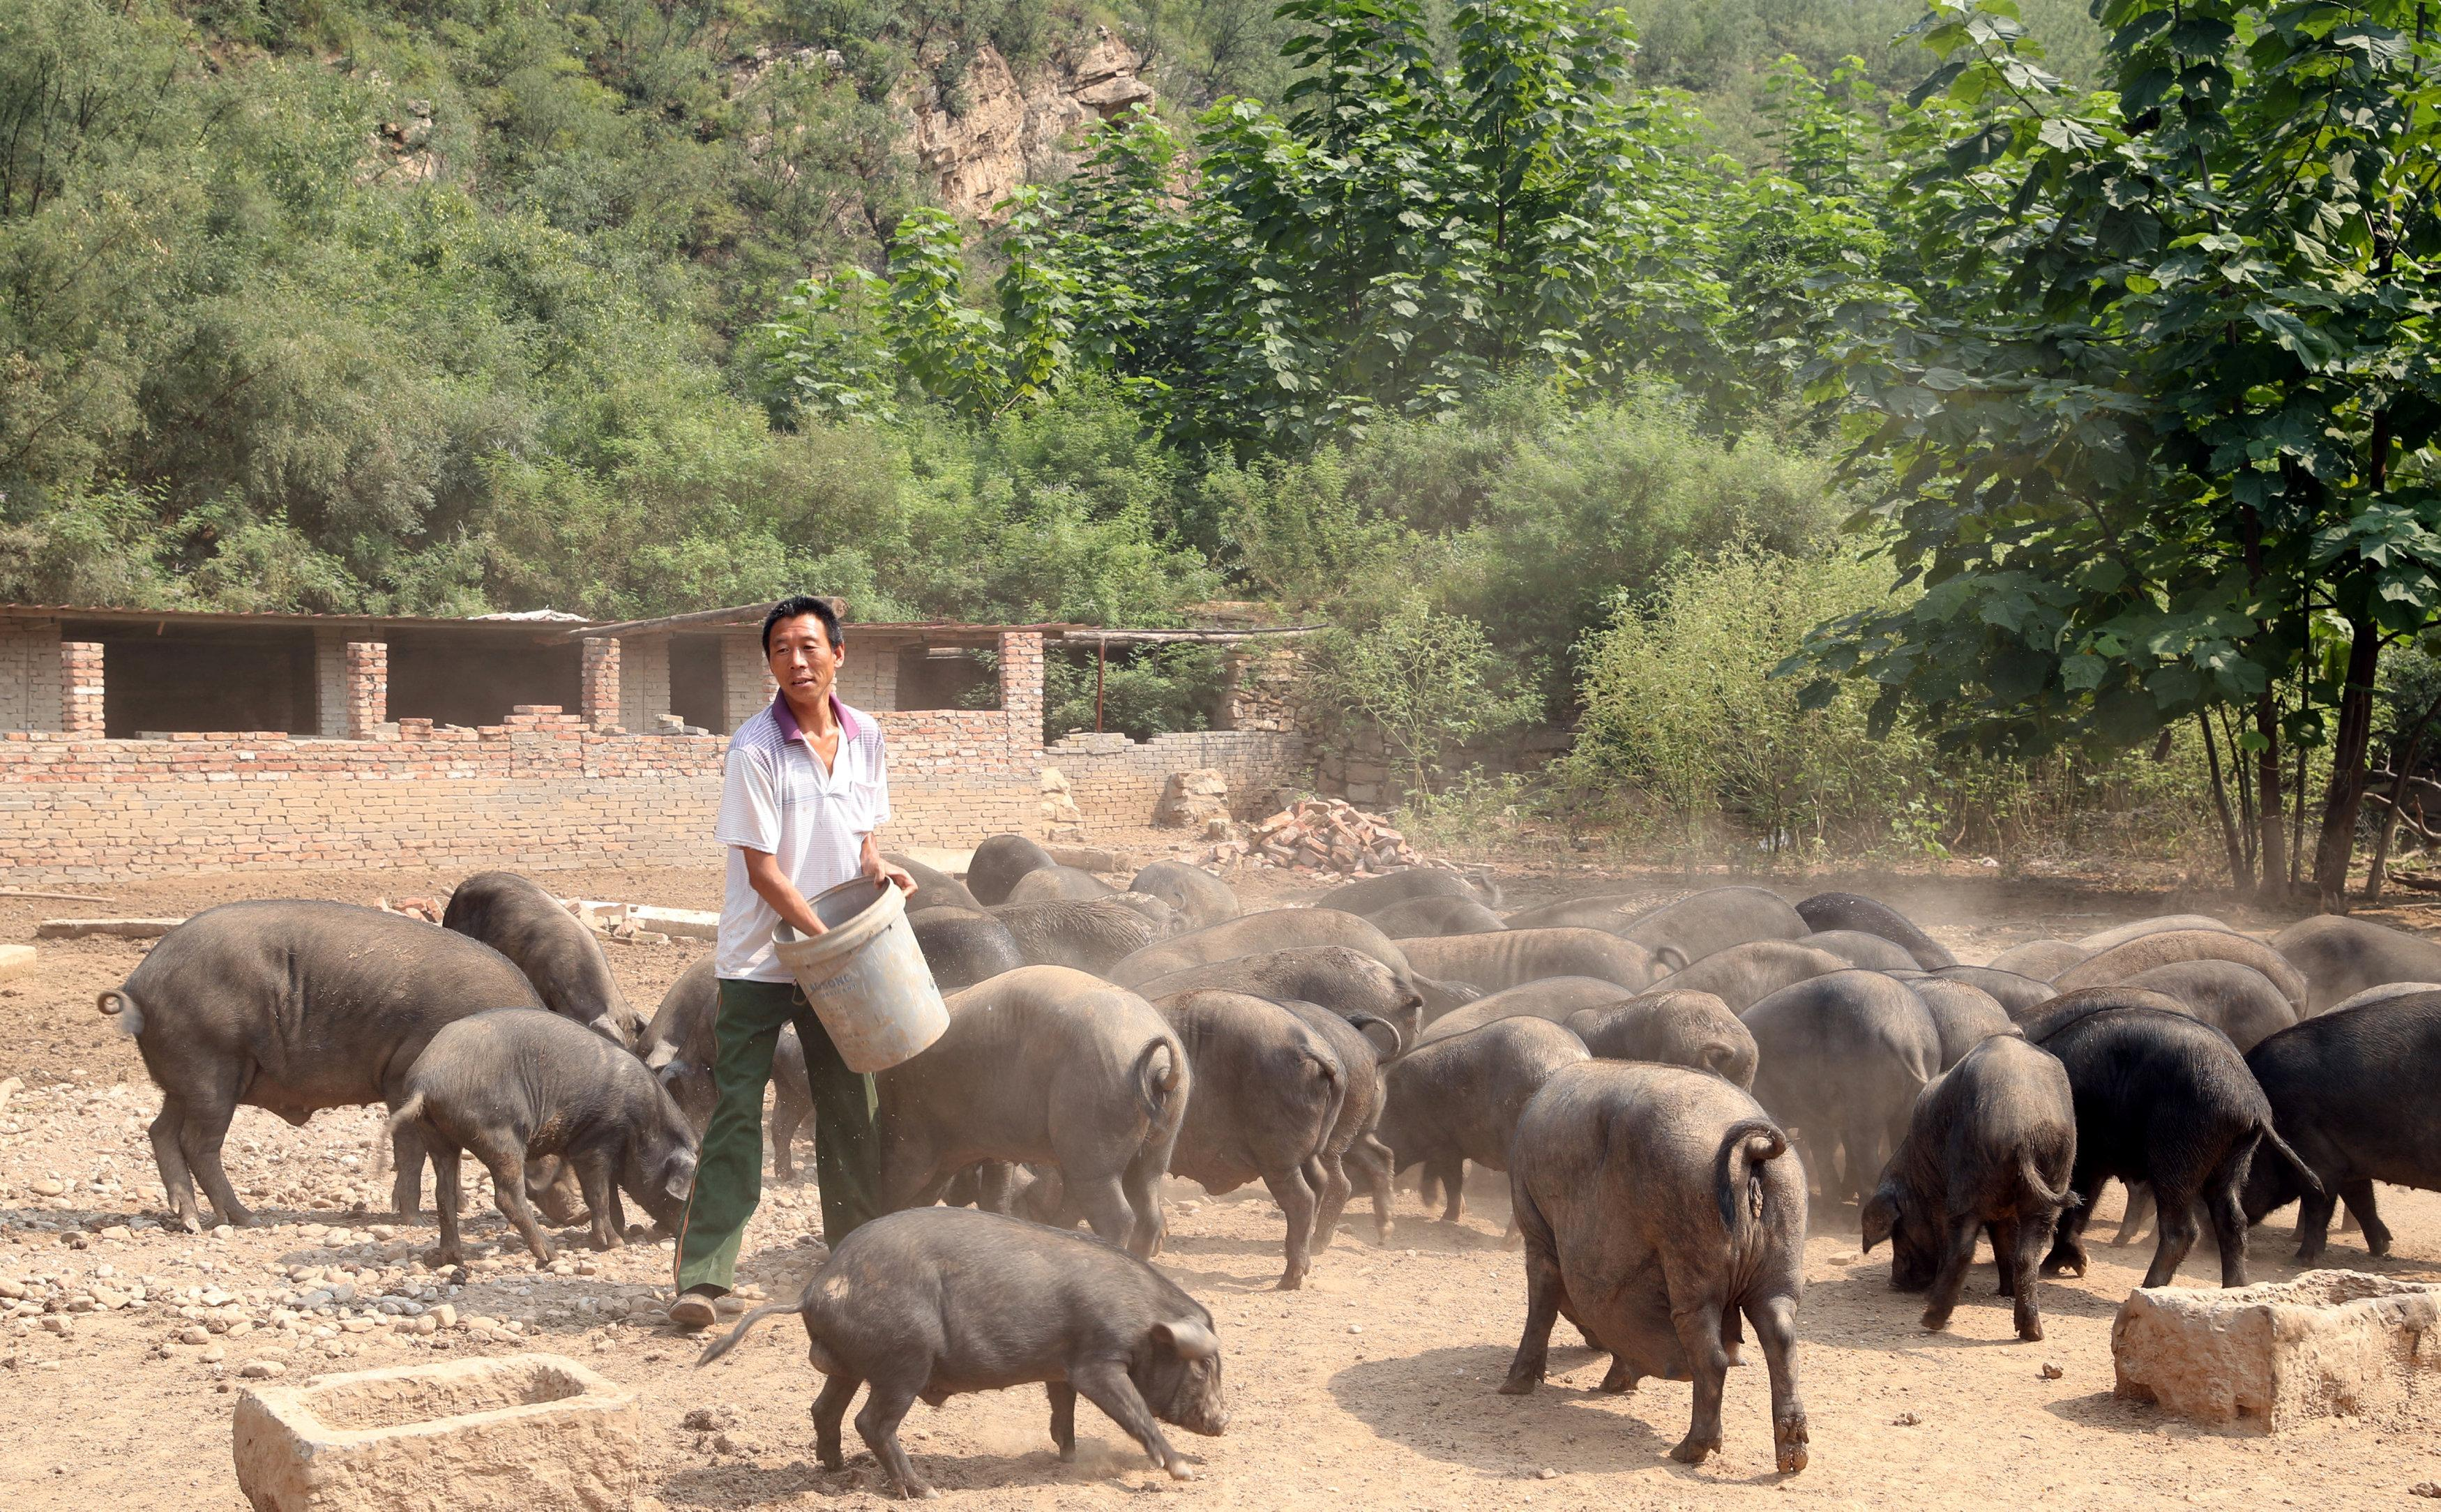 A worker feeds pigs at a farm in Xibaishan village in Hebei province, China August 28, 2018. Picture taken August 28, 2018. Stringer